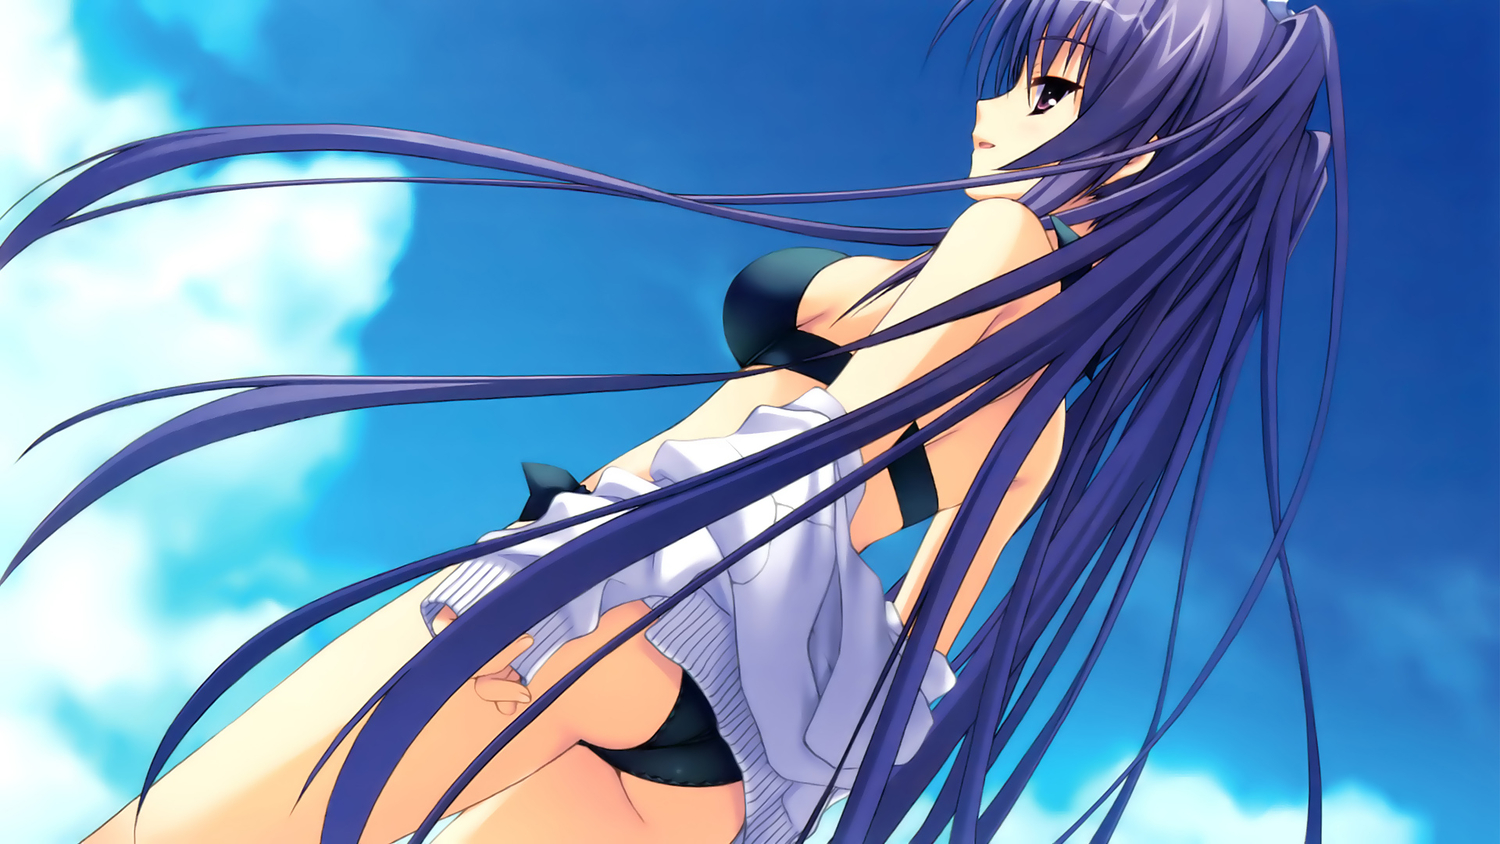 bikini game_cg itsukishishihimenomikoto kobuichi long_hair muririn purple_hair sky swimsuit tenshinranman undressing